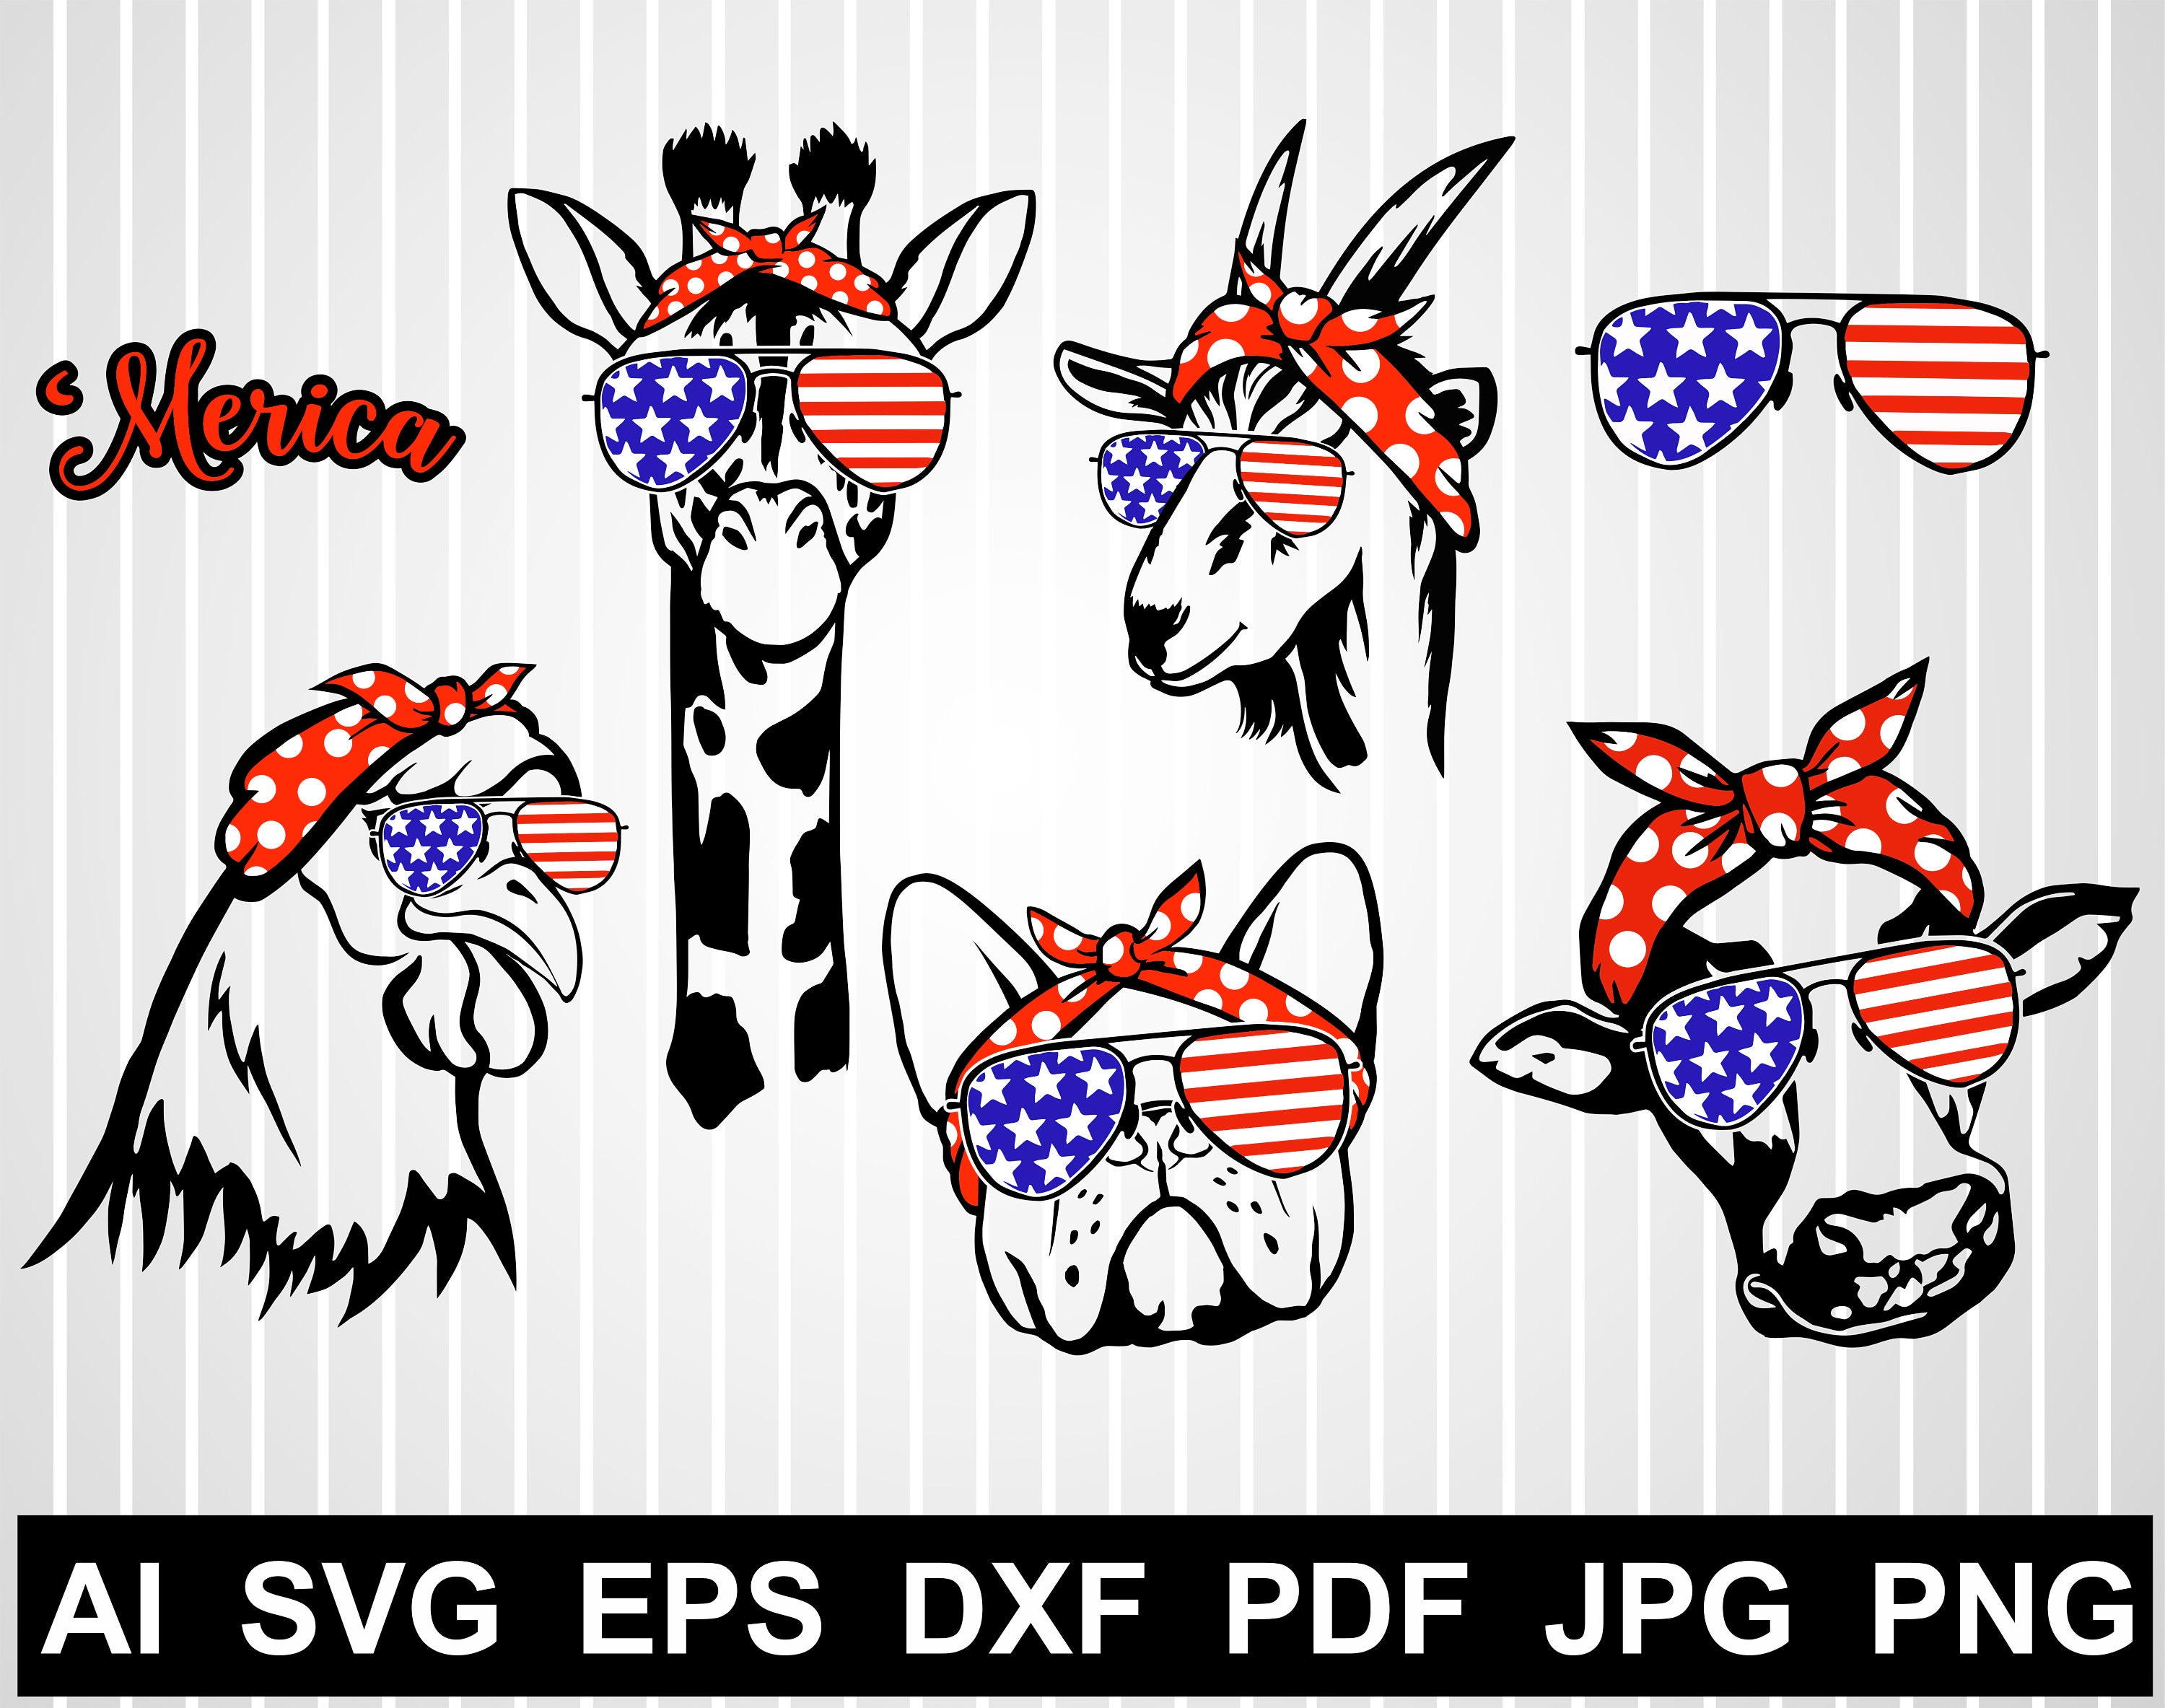 Merica Giraffe Svg Cuts File For Cricut Goat Face Svg Hen Etsy